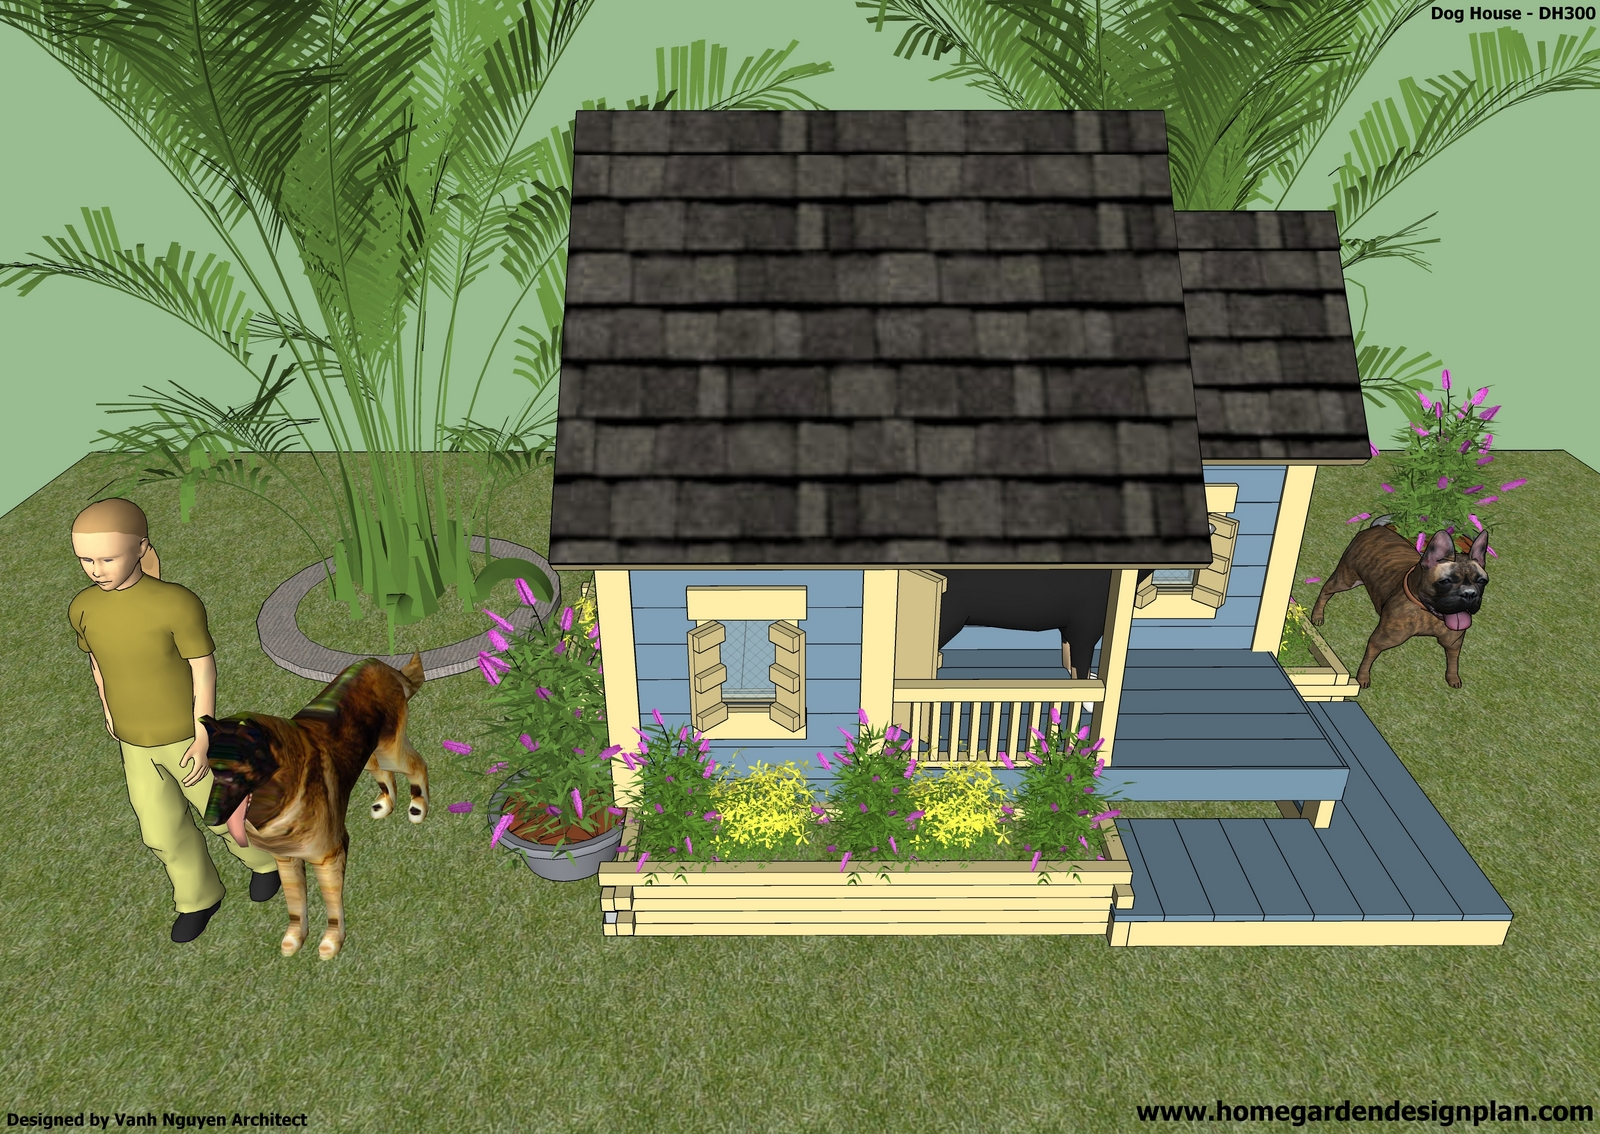 Pdf diy 2 dog house plans free download adirondack chair plans woodsmith woodworktips - Dog house images free ...